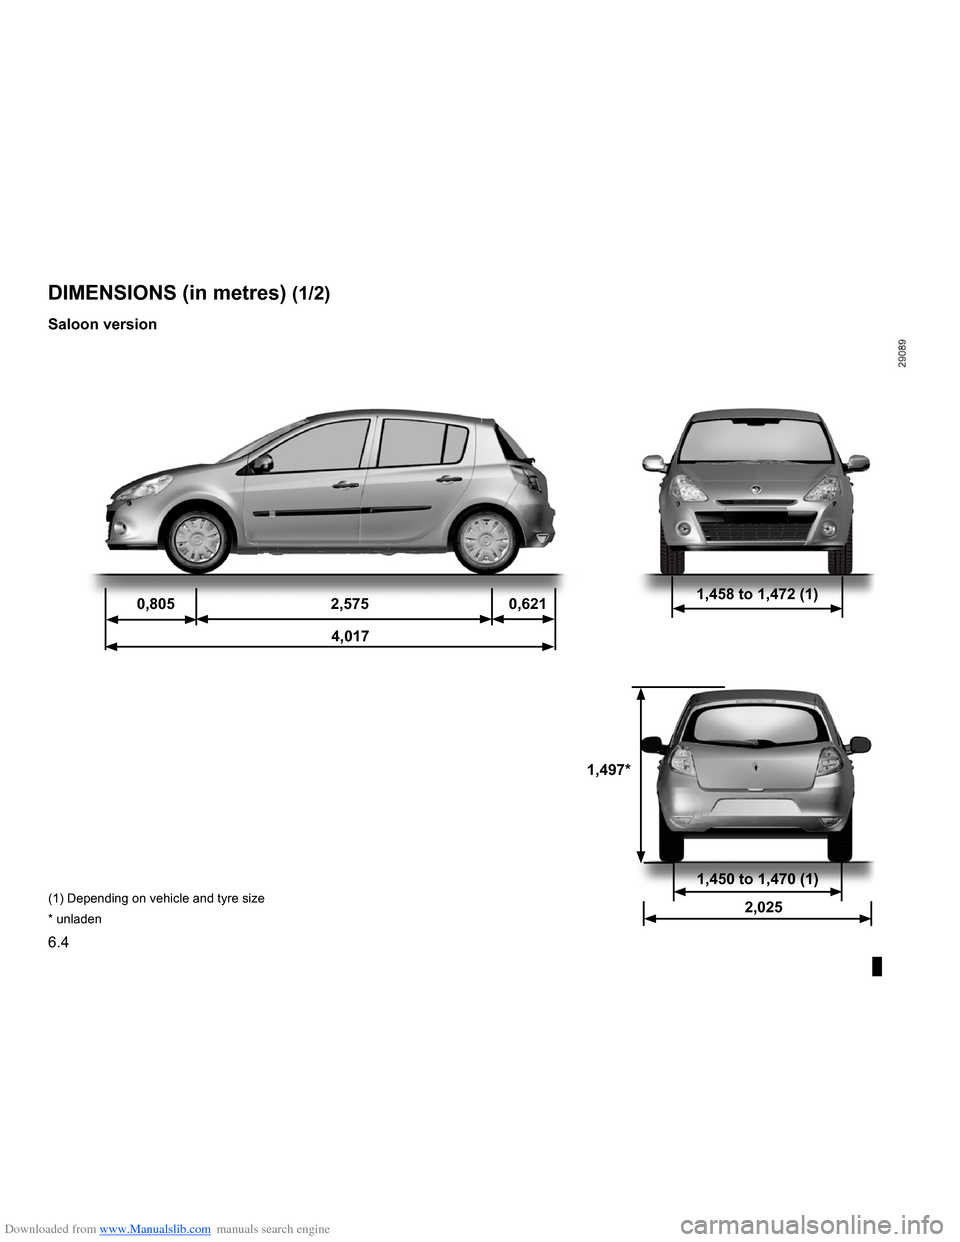 RENAULT CLIO 2009 X85 / 3.G Owners Manual Downloaded from www.Manualslib.com manuals search engine  technical specifications .........................(up to the end of the DU)dimensions  ...........................................(up to the e